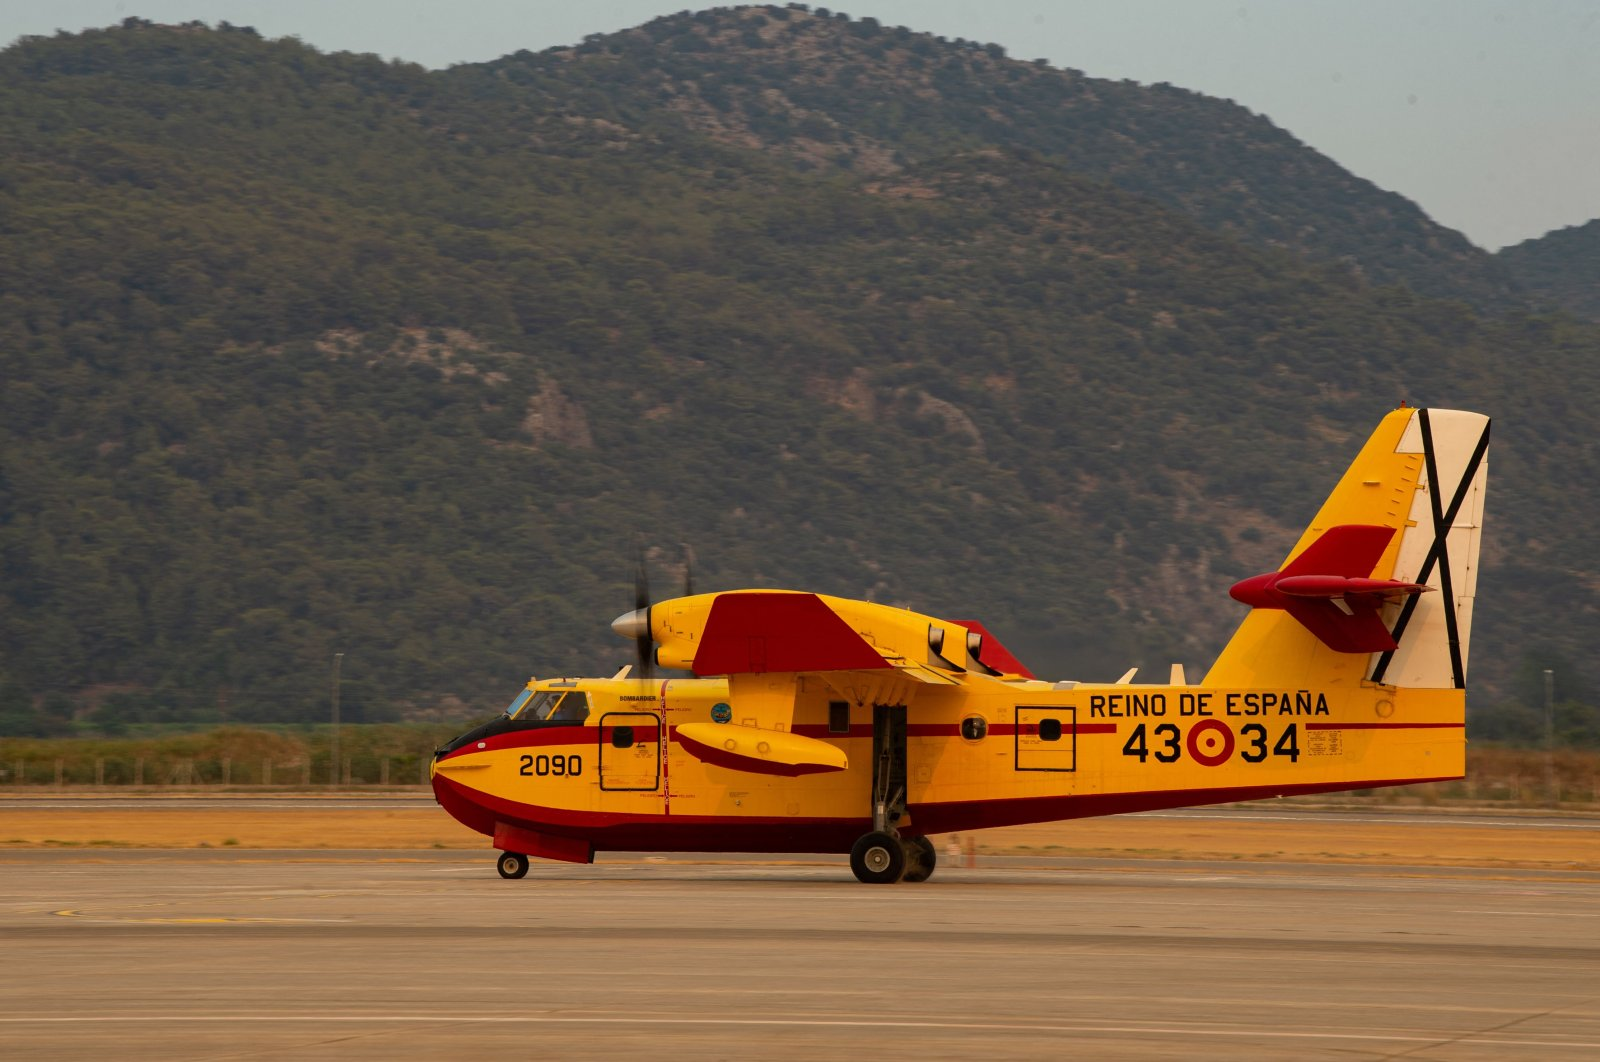 A Spanish hydroplane prepares for flights over wildfires from the Dalaman Airport of Muğla, Turkey, Aug. 3, 2021. (AFP File Photo)